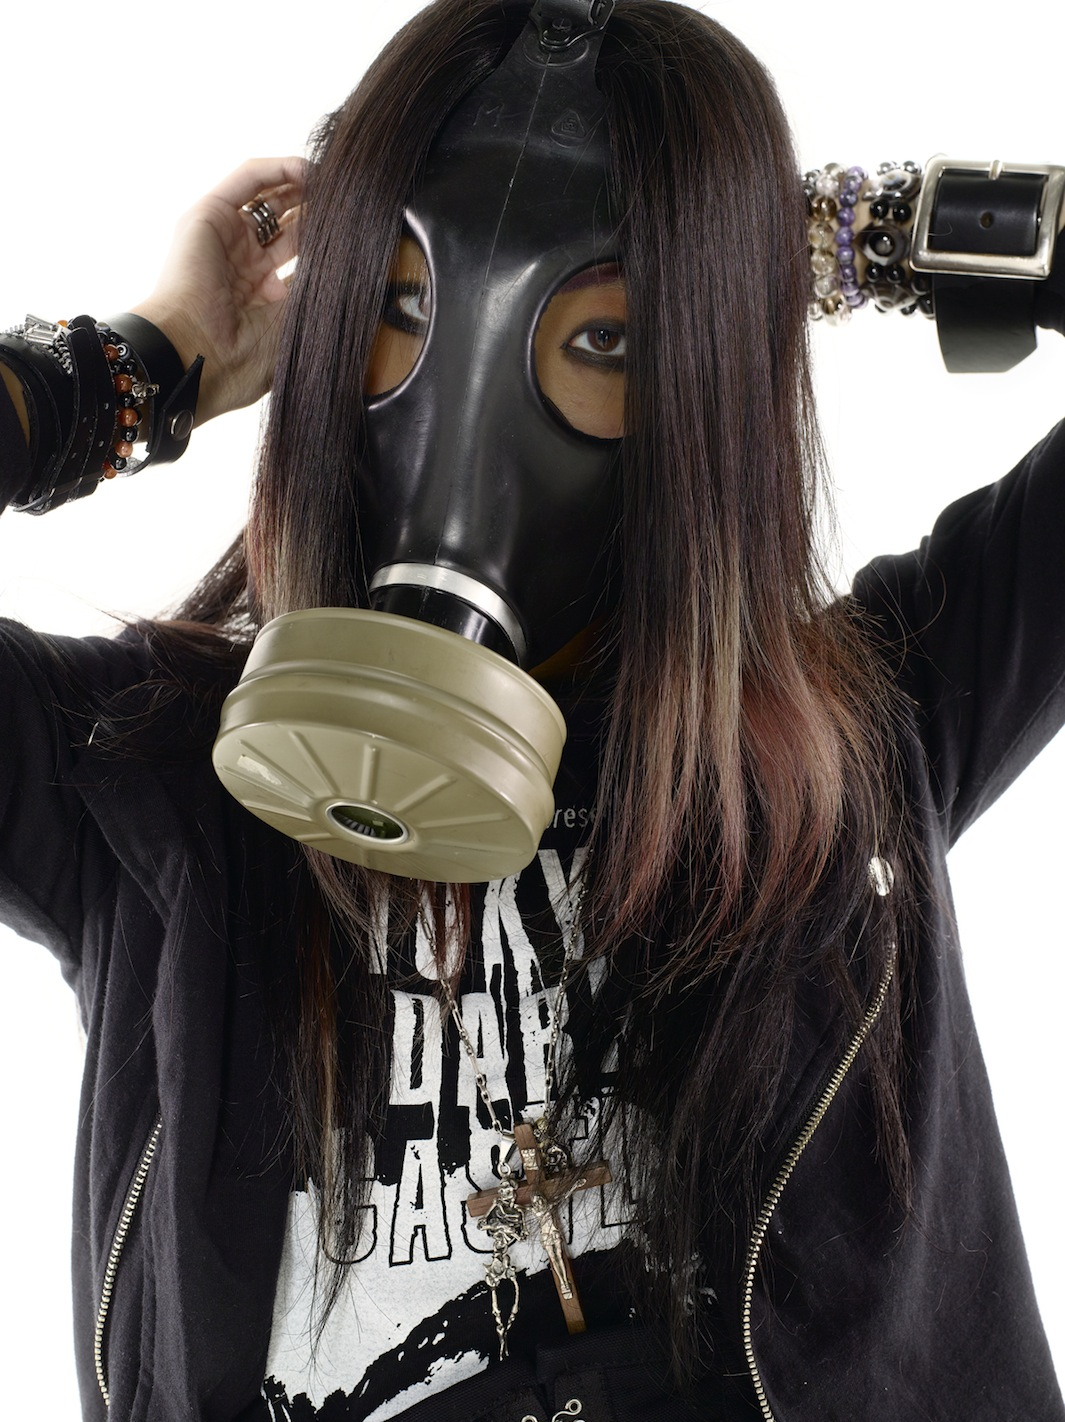 Name: meme, Fashion Category: GASMASKS